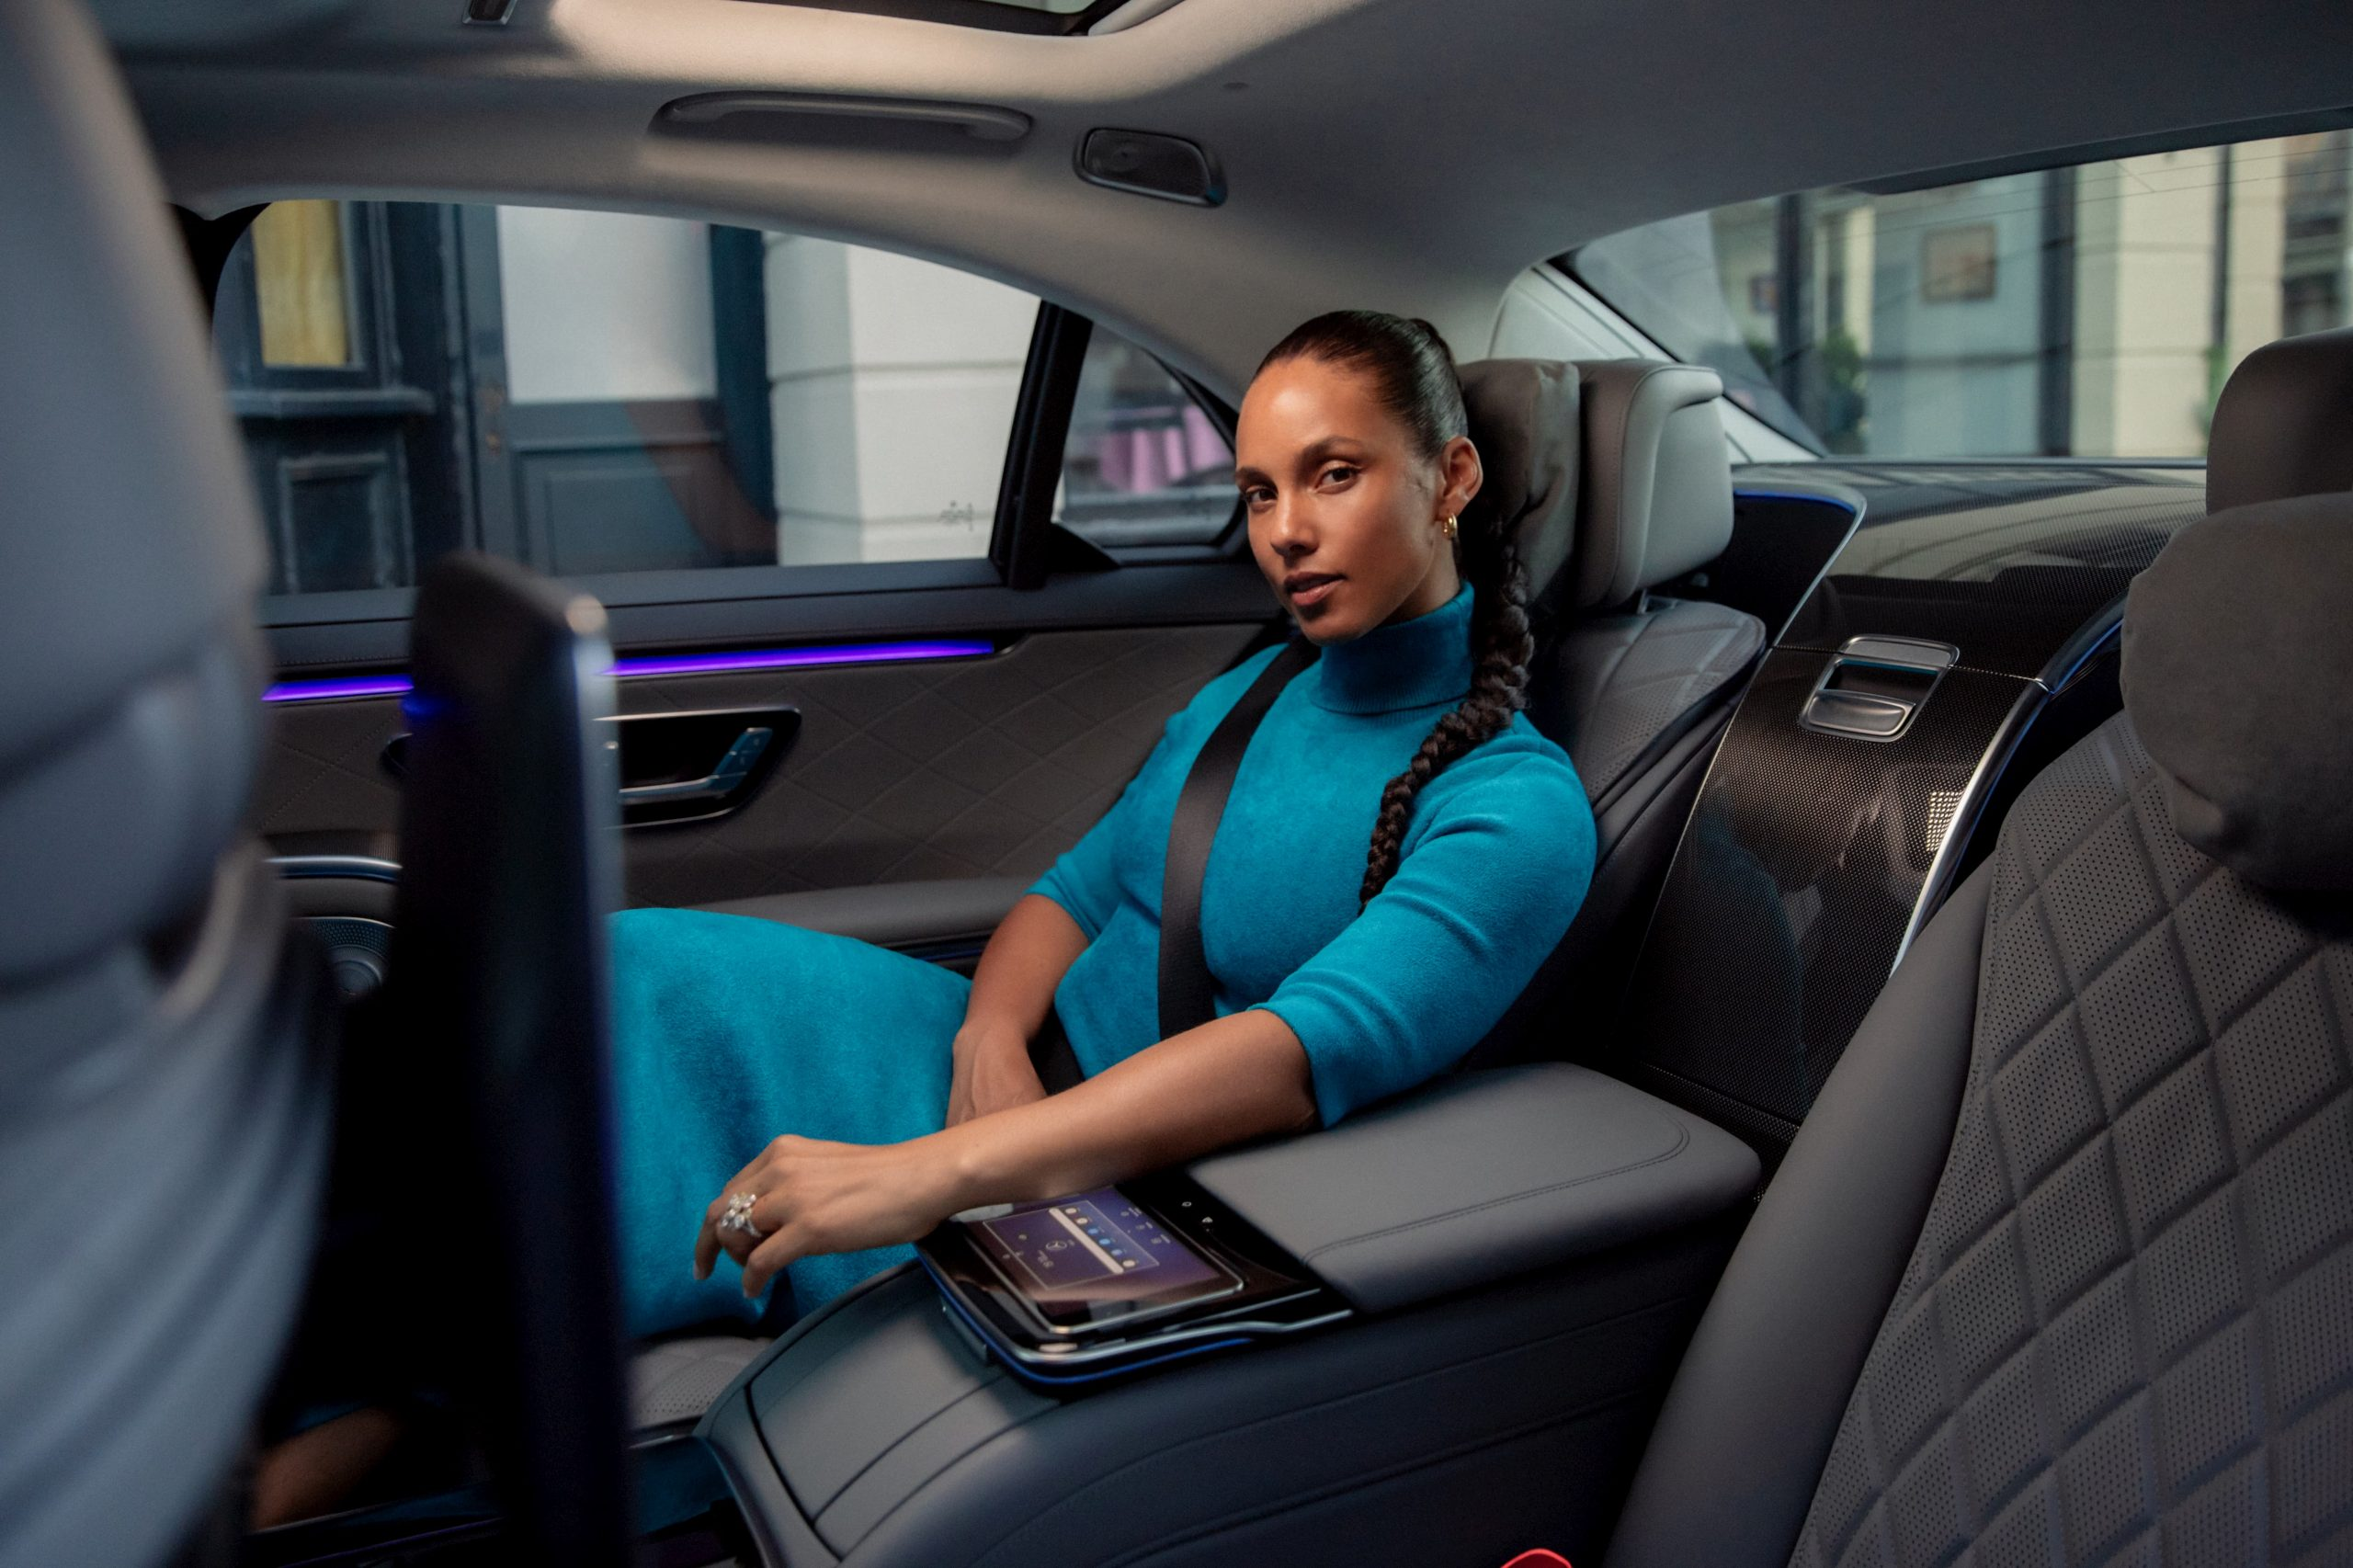 Mercedes-Benz S-Class Alicia Keys